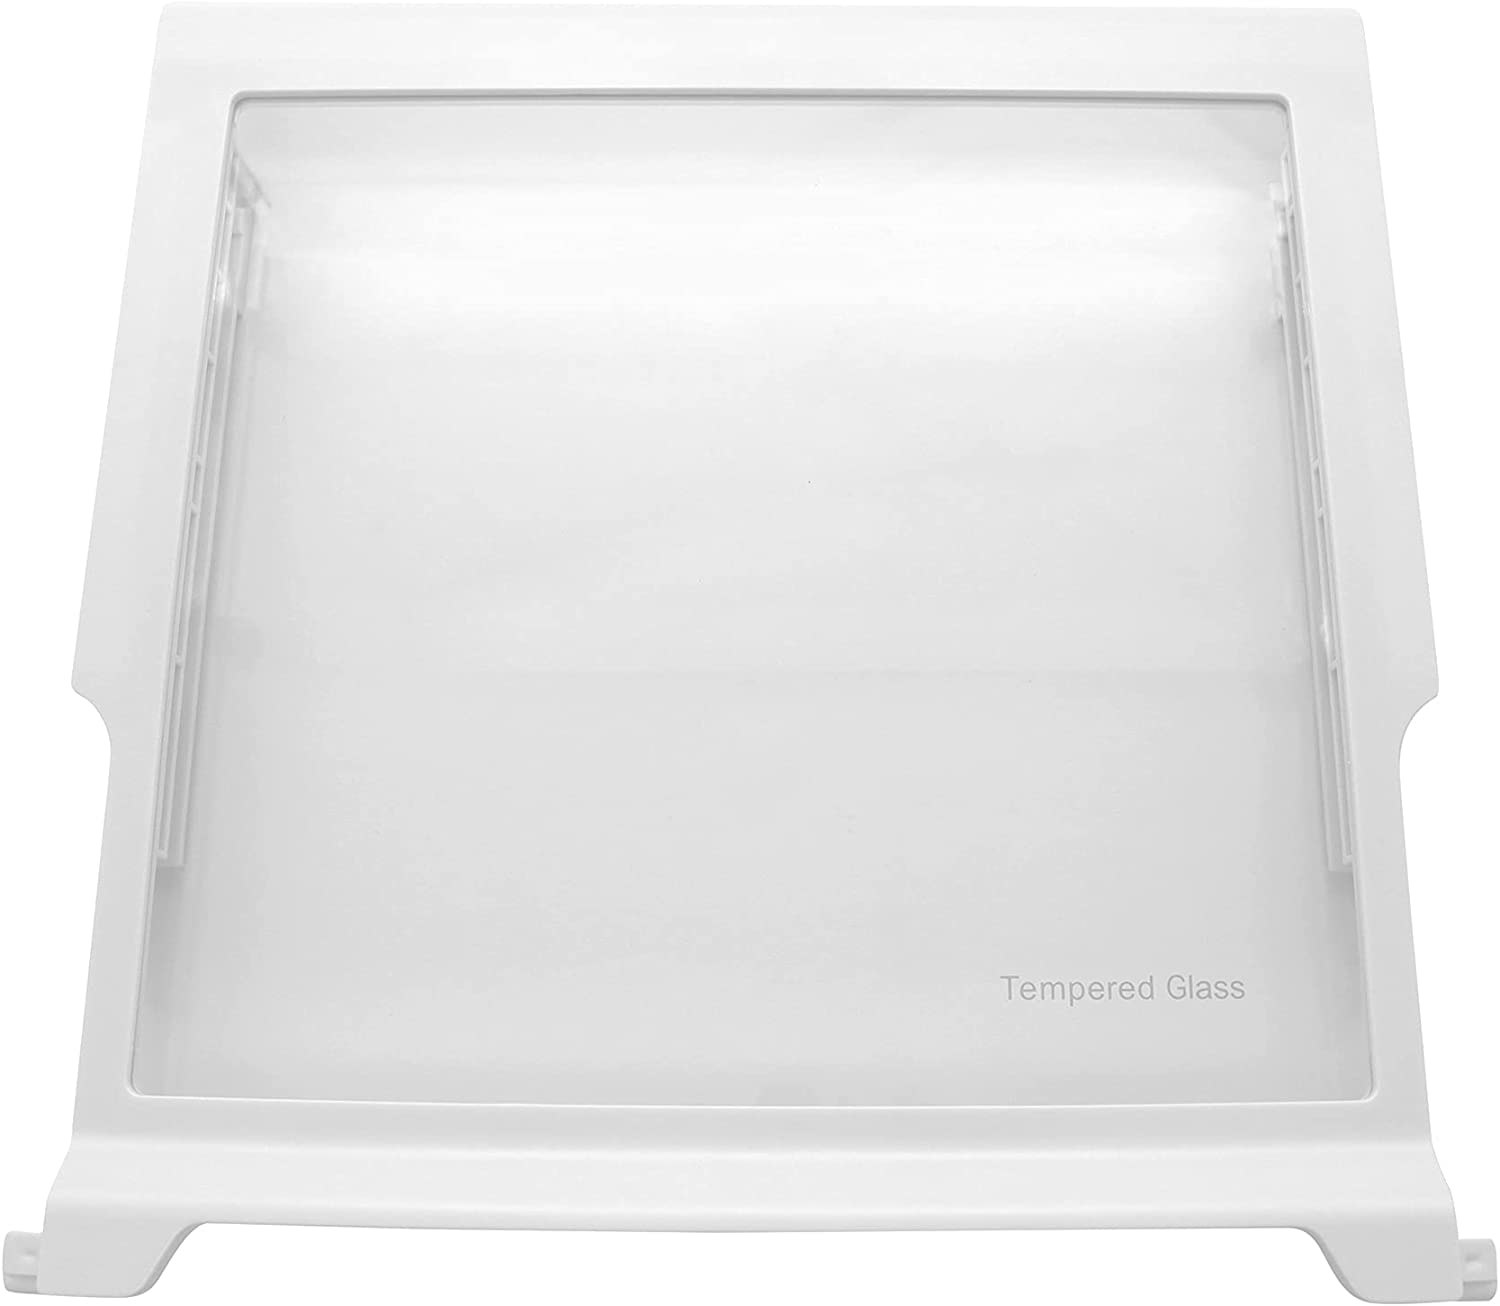 Lifetime Appliance W10276348 Glass Shelf Compatible with Whirlpo